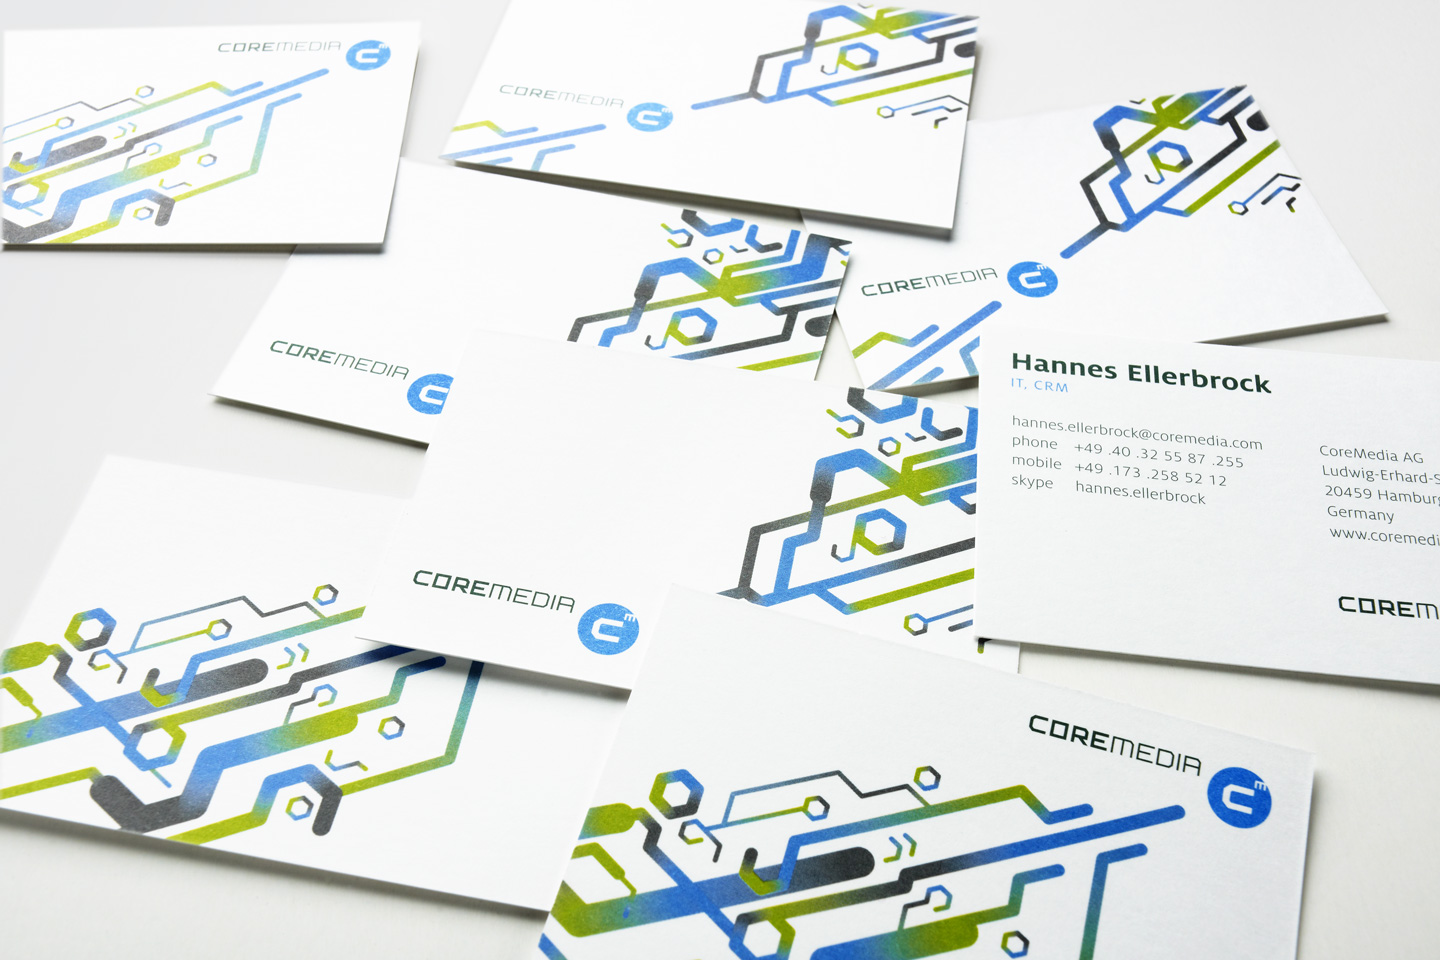 Corporate Design / Visitenkarten: CoreMedia